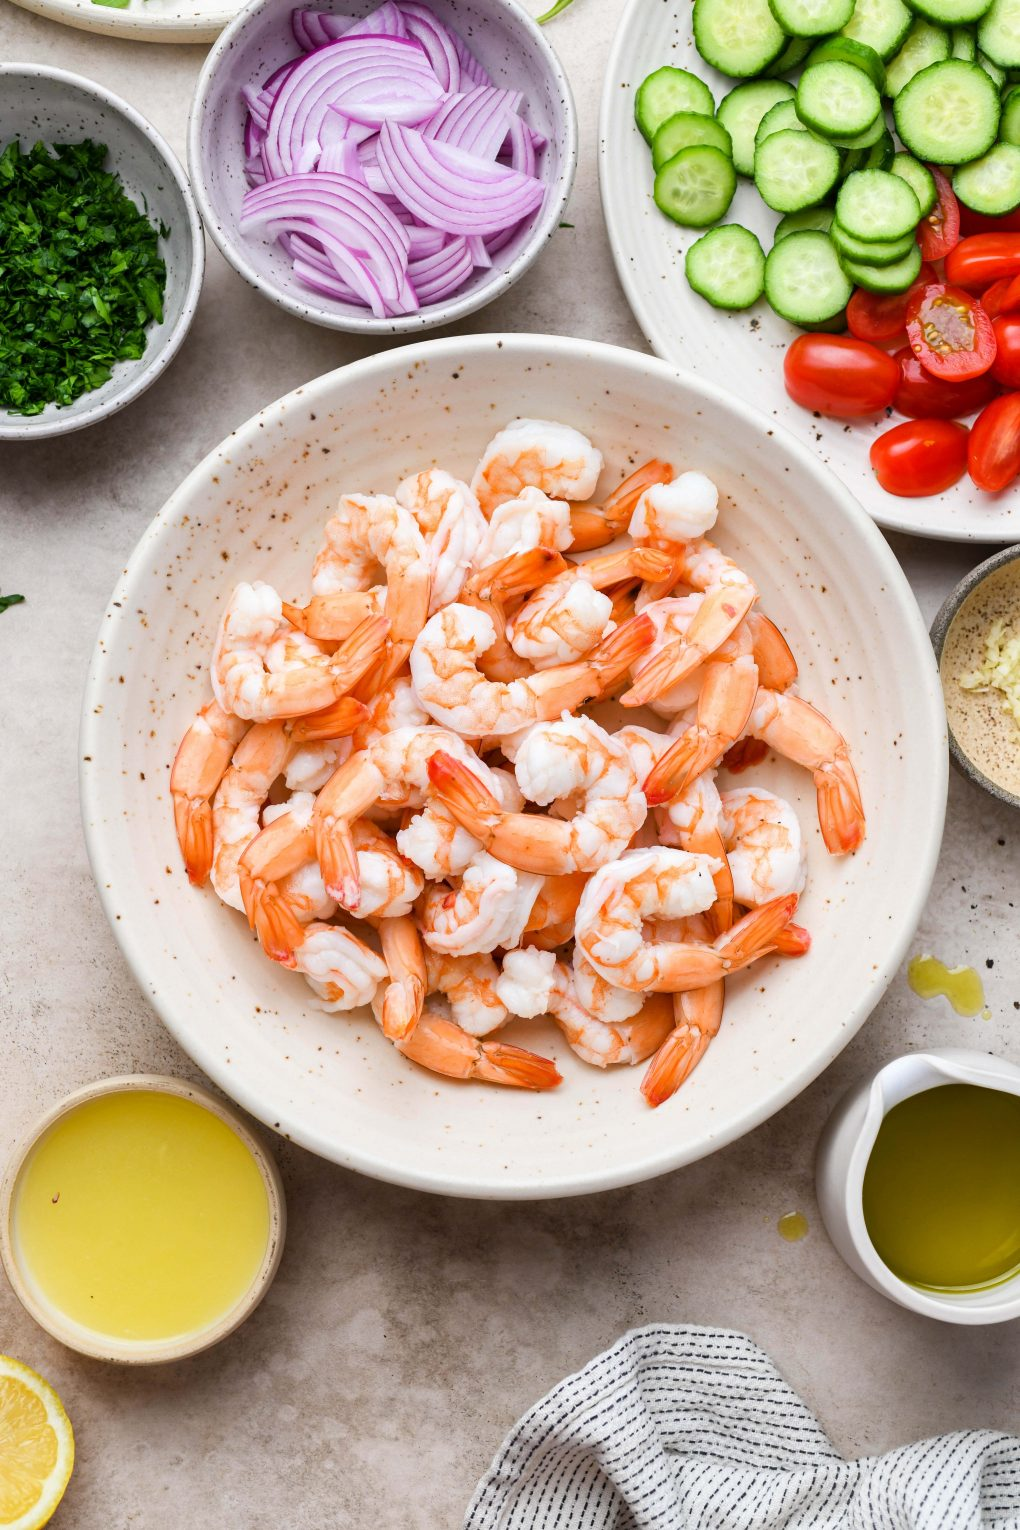 Image of a large speckled bowl filled with pre-cooked shrimp, on a light beige background next to various bowls of other salad ingredients.